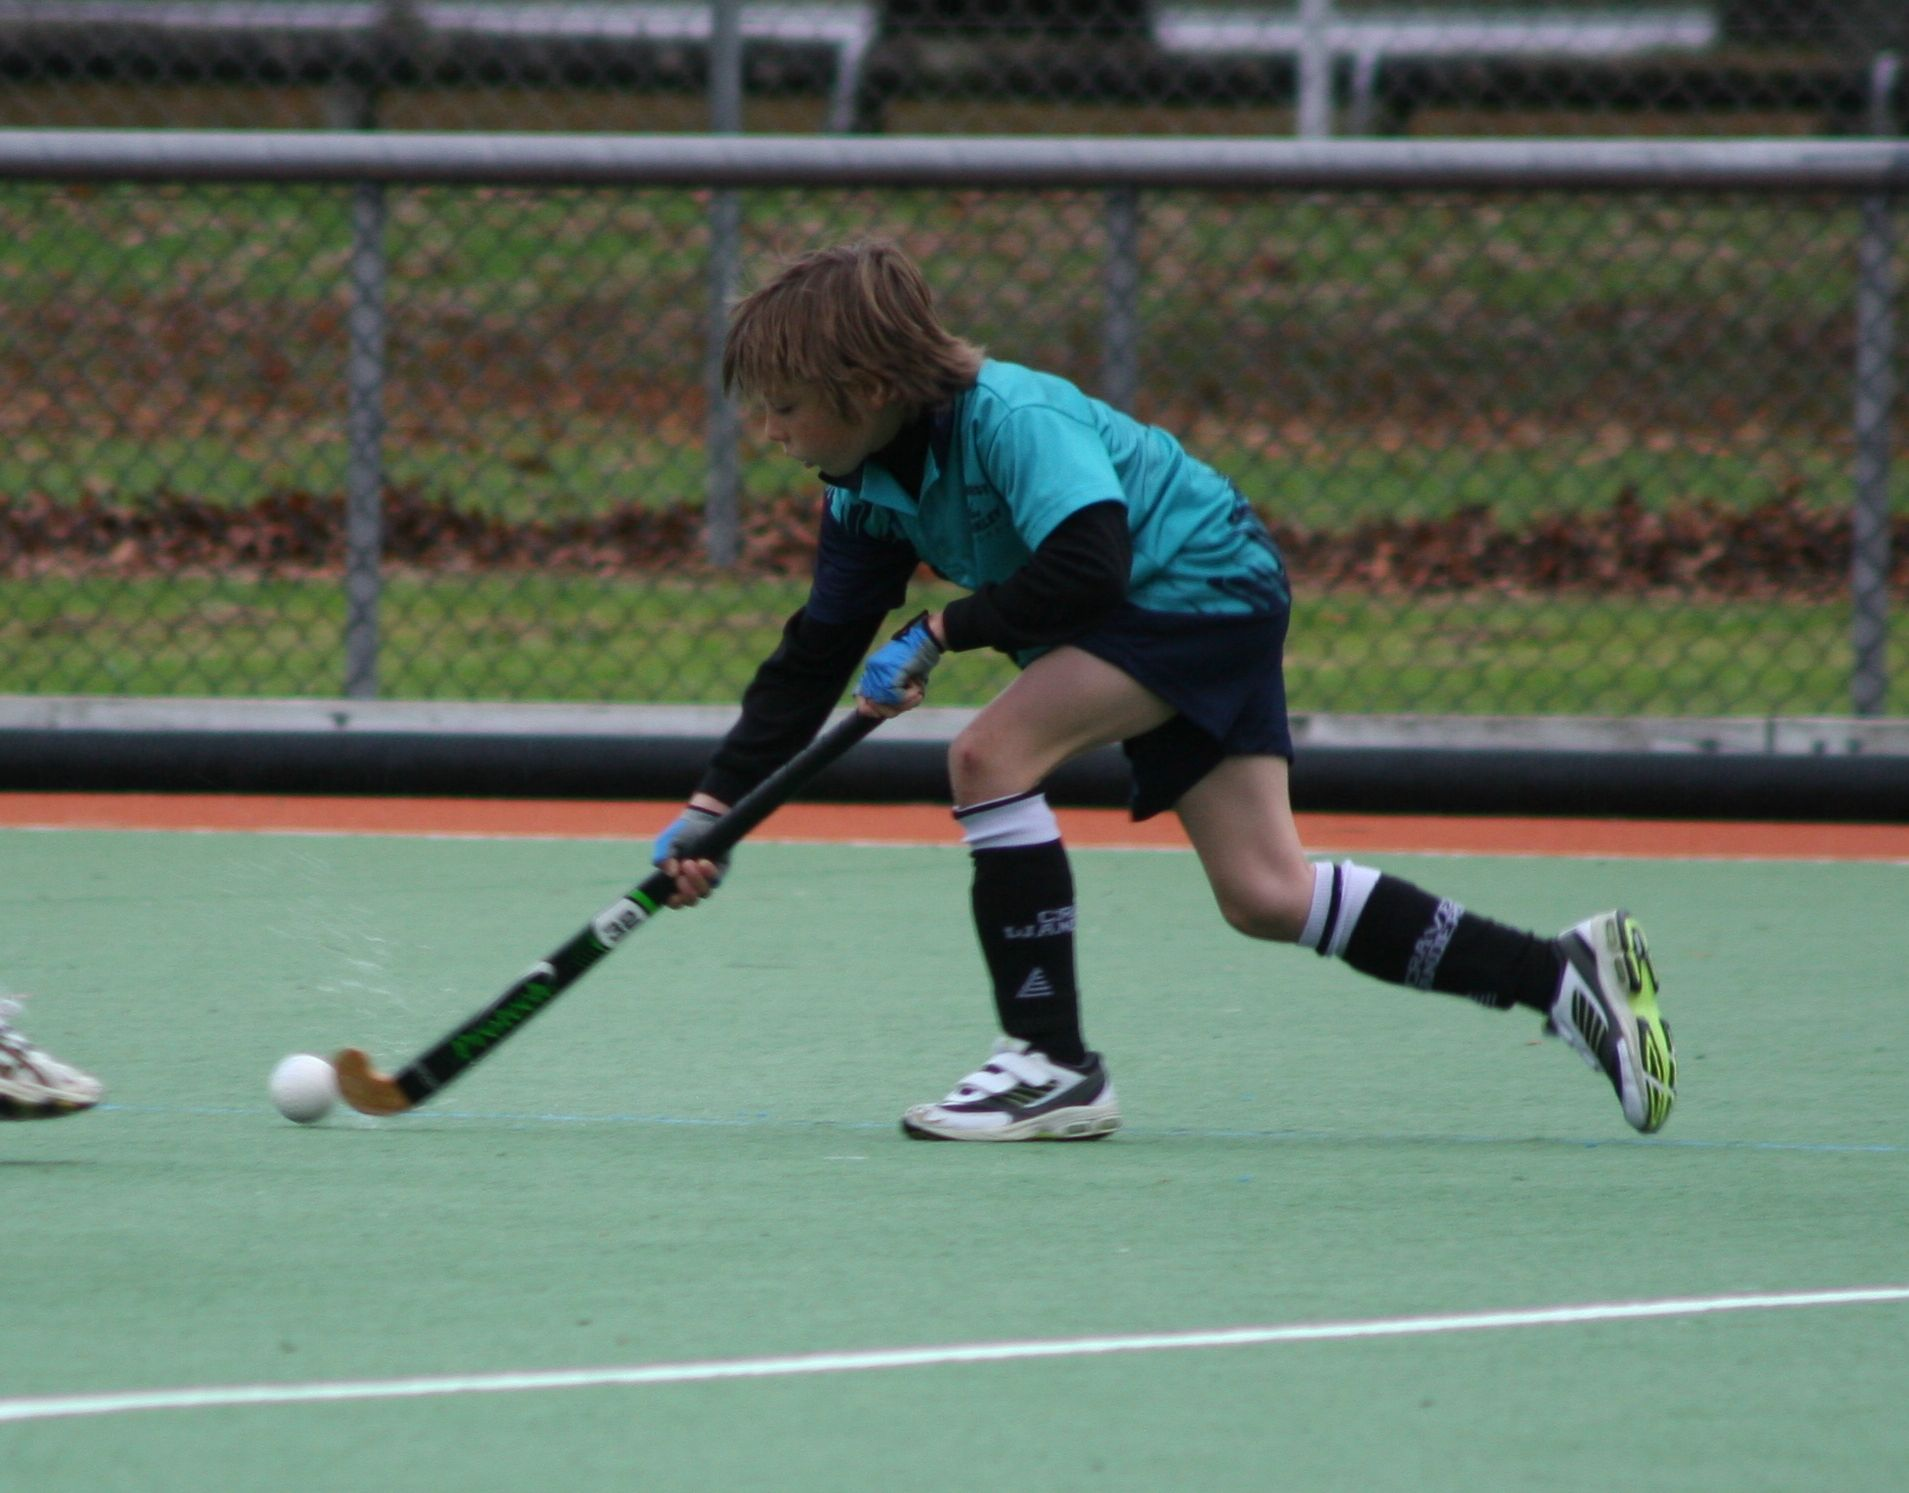 Aonghas playing hockey